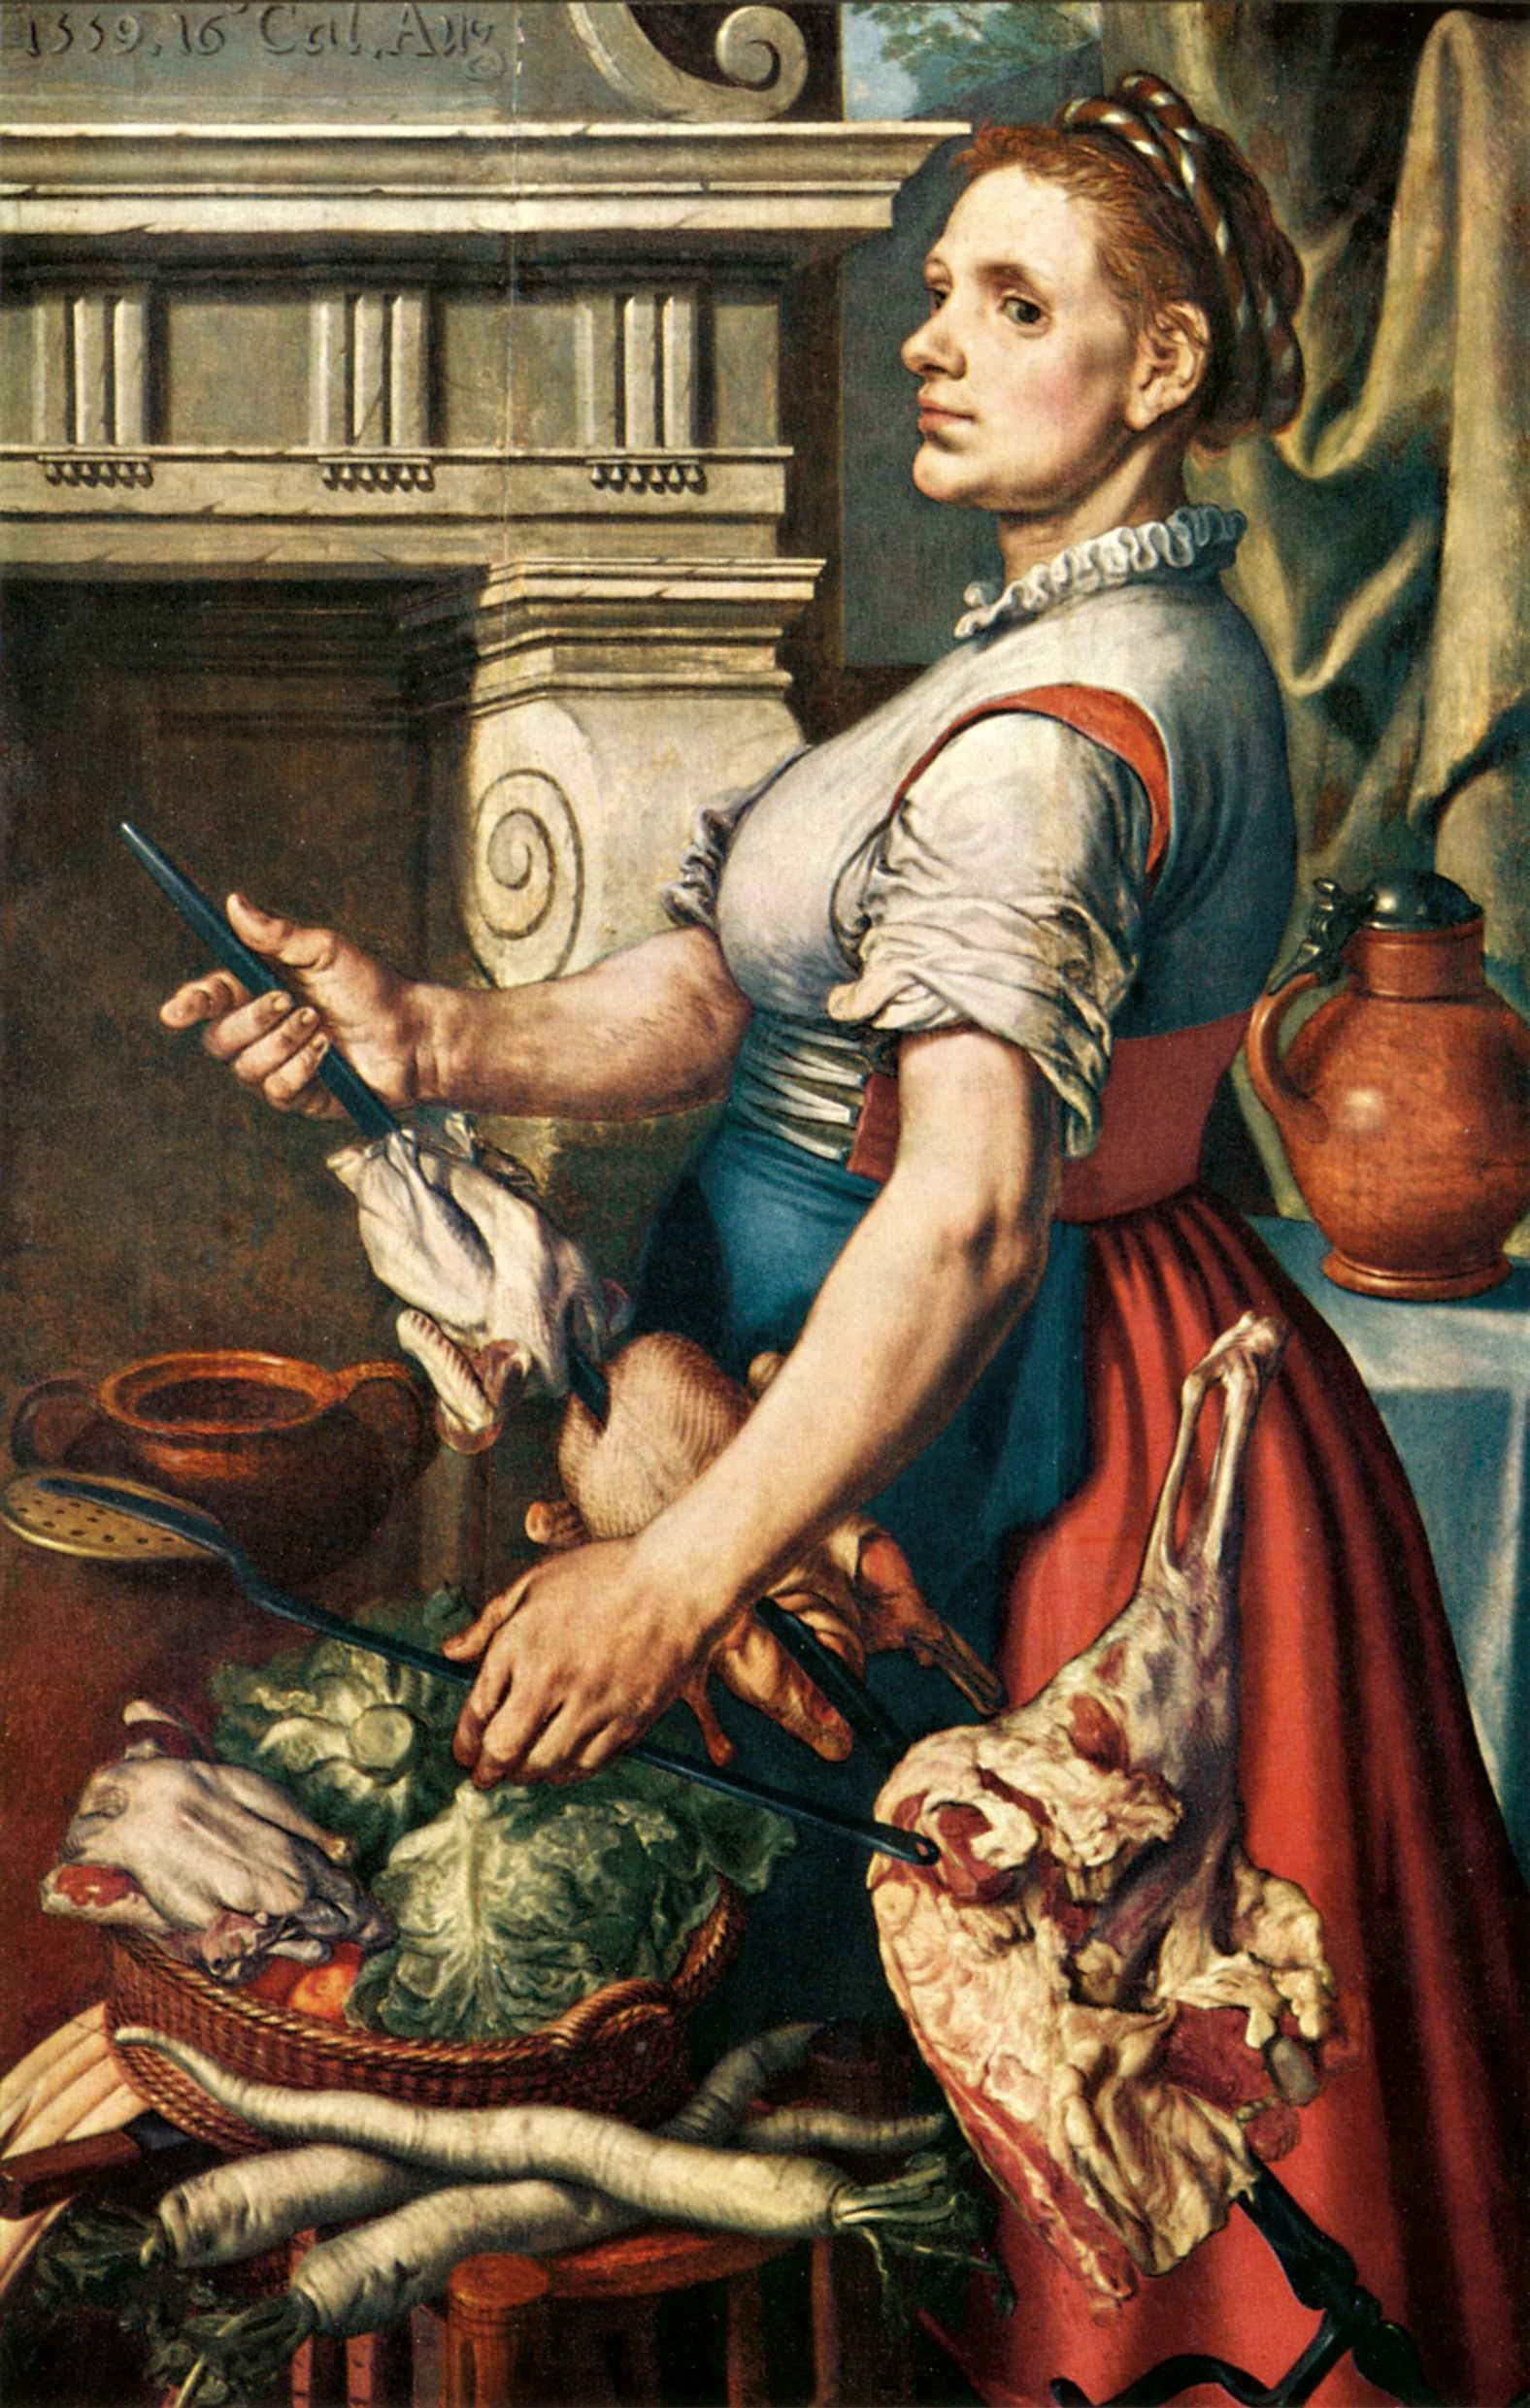 http://upload.wikimedia.org/wikipedia/commons/0/08/Pieter_Aertsen_003.jpg